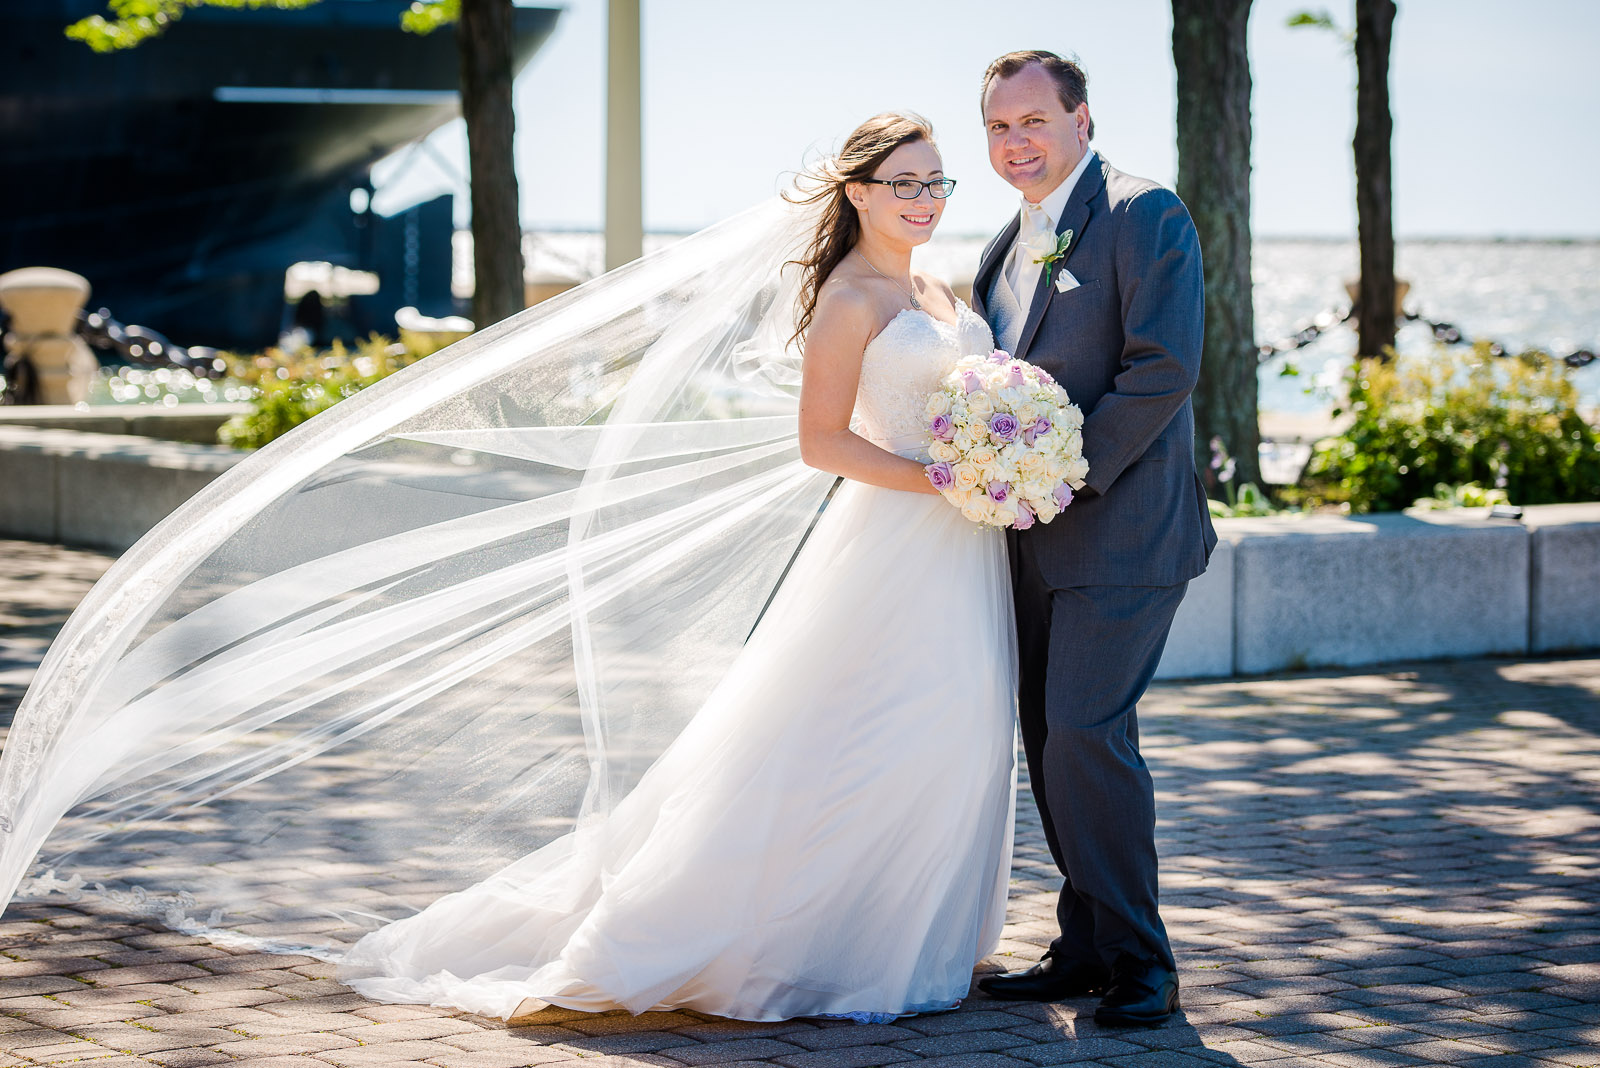 Eric_and_Christy_Photography_Blog_2018_Portraits-43